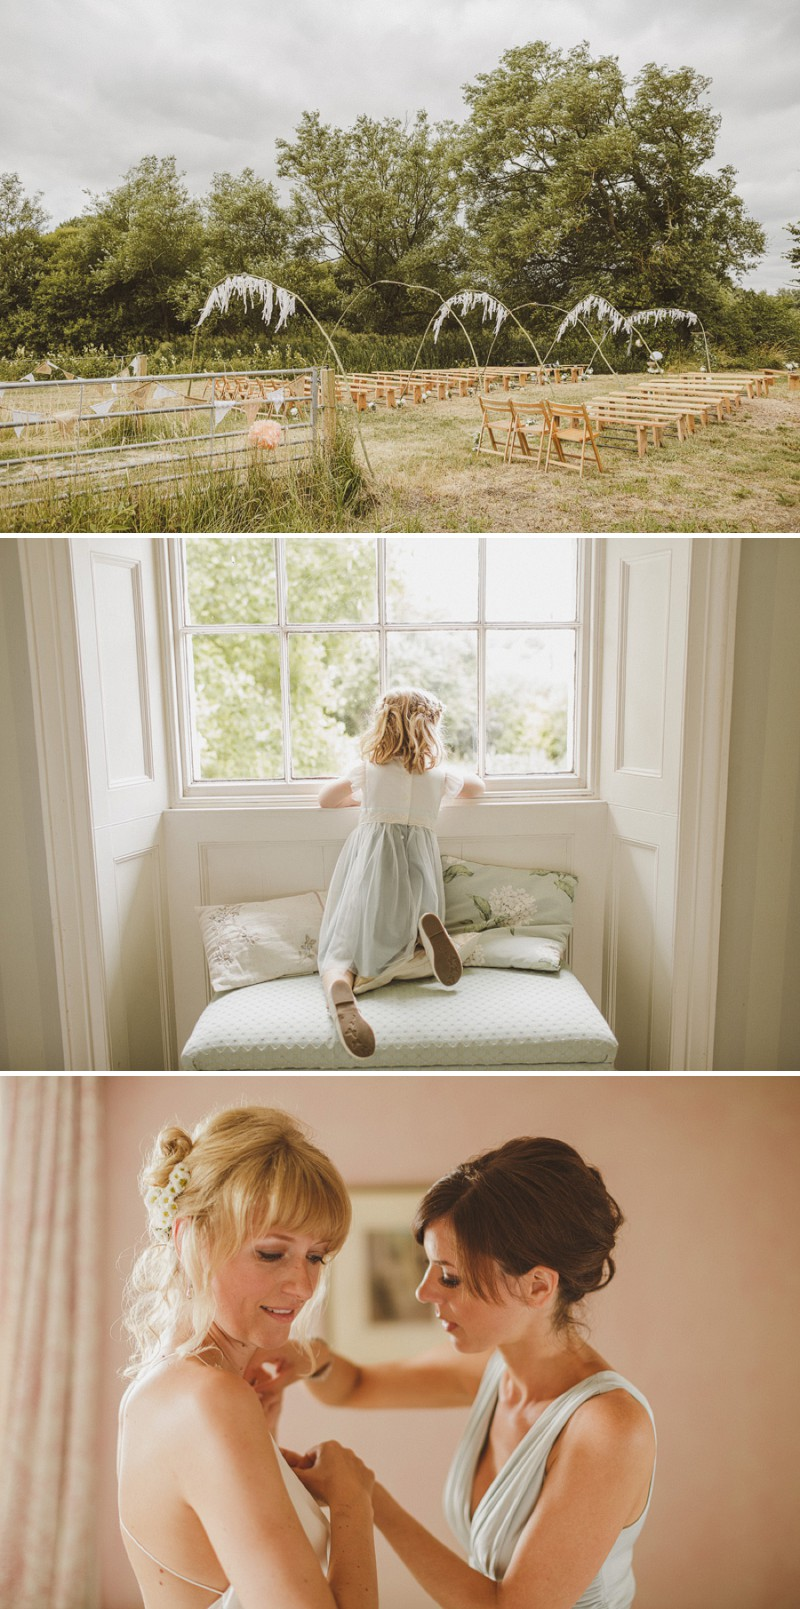 An Epic DIY Bohemian Wedding At Ratfyn Farm With A Jenny Packham Dress And A Humanist Ceremony And A Peach Colour Scheme Photographed By Ed Peers._0003